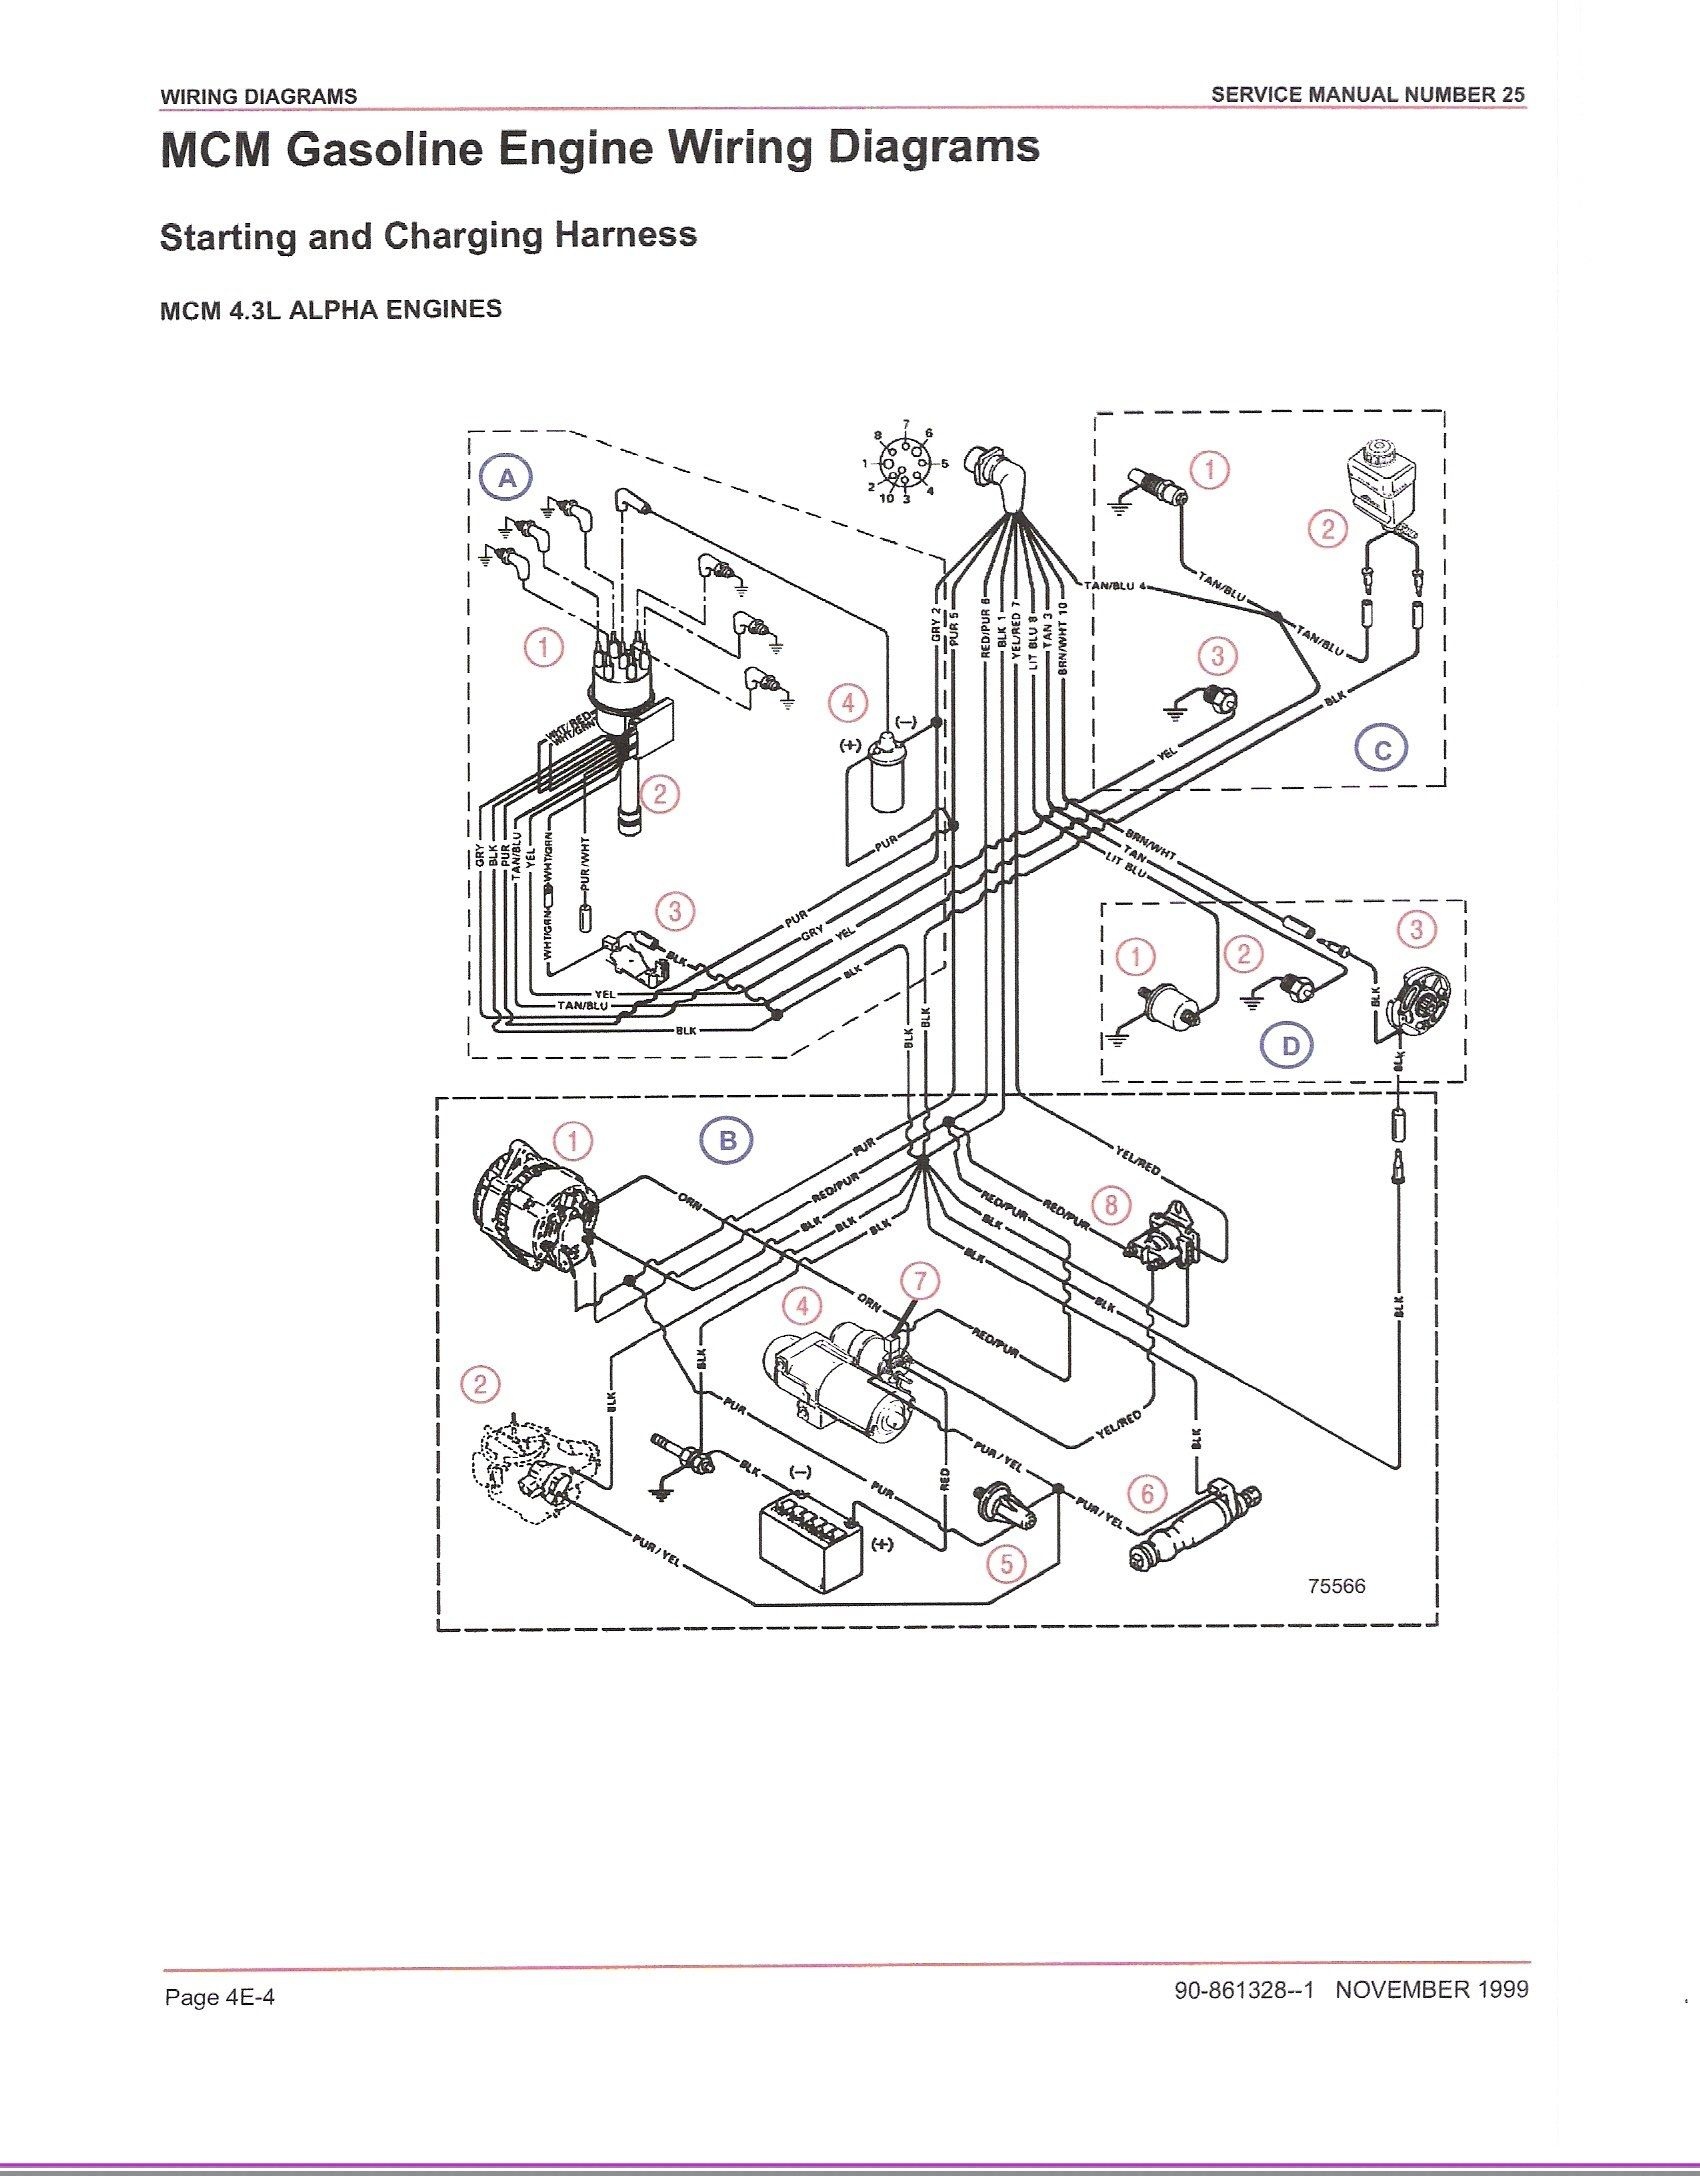 3 7 mercruiser engine diagram wiring diagram loadmercruiser engine wiring diagram wiring diagram centre 3 7 mercruiser engine diagram